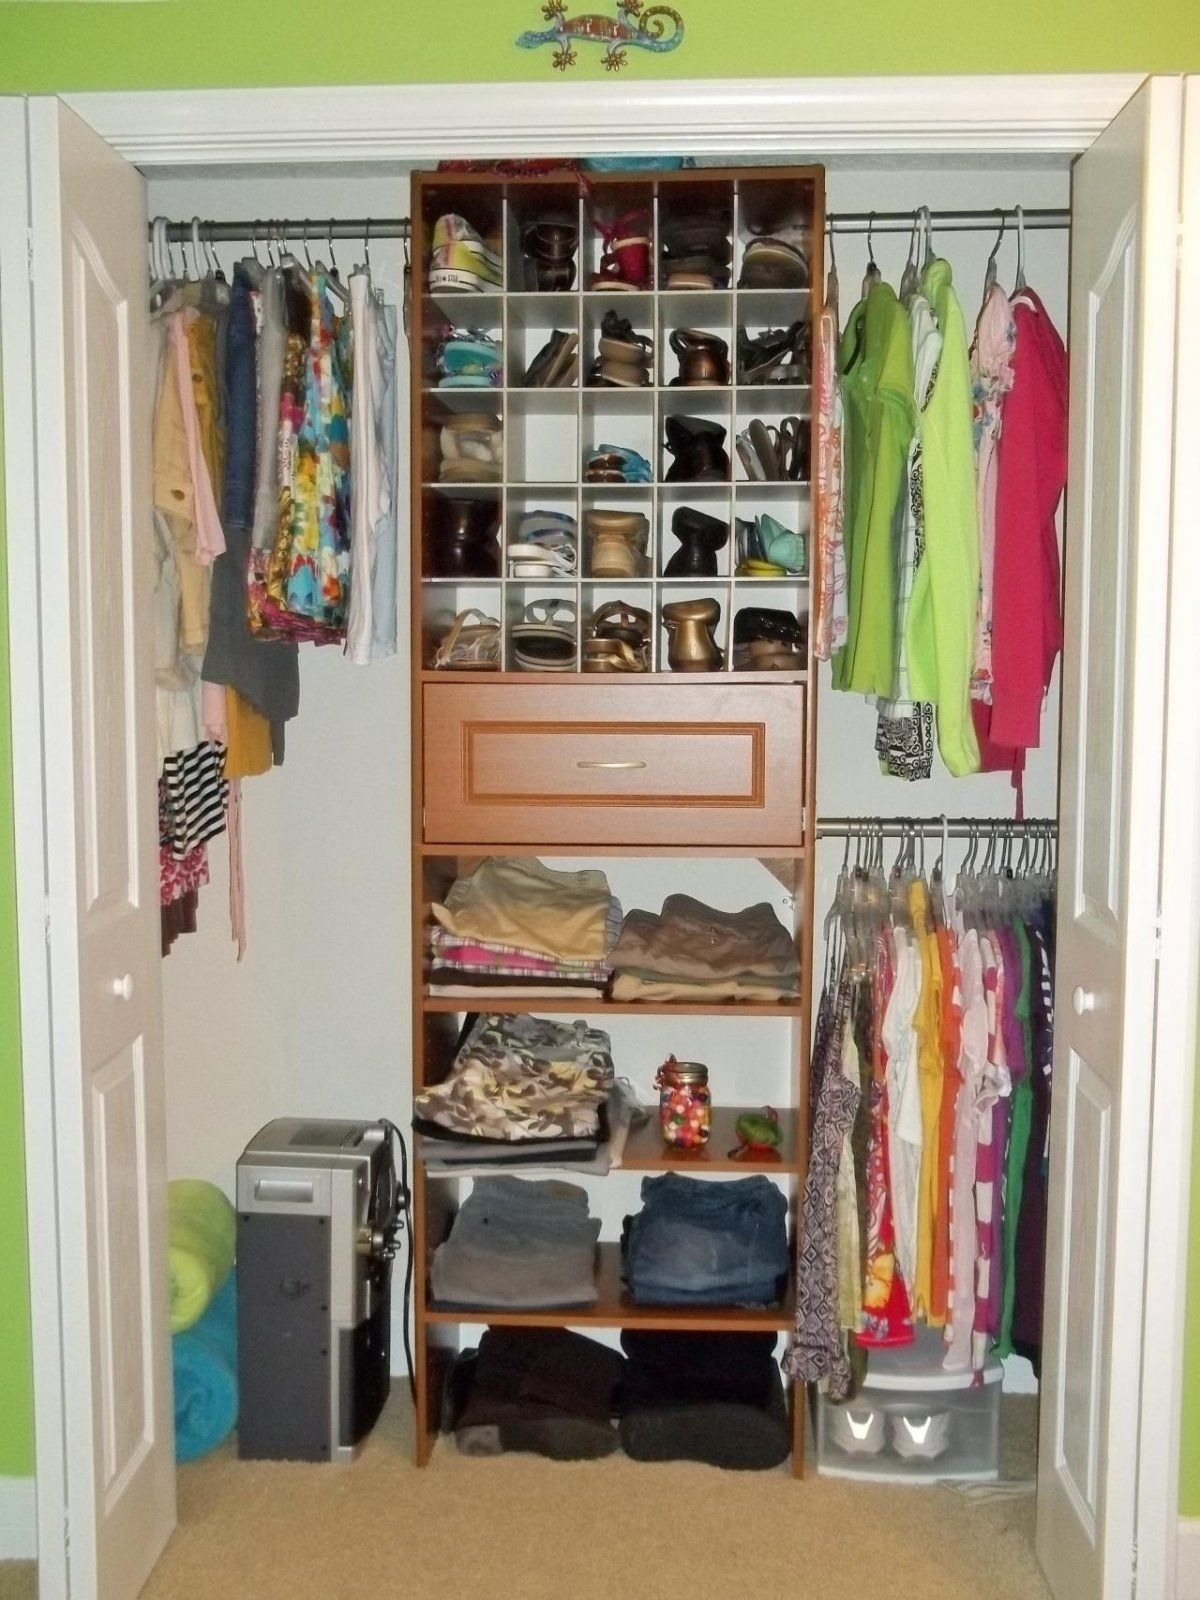 diy small bedroom closet ideas bdeaff for your hallway with how